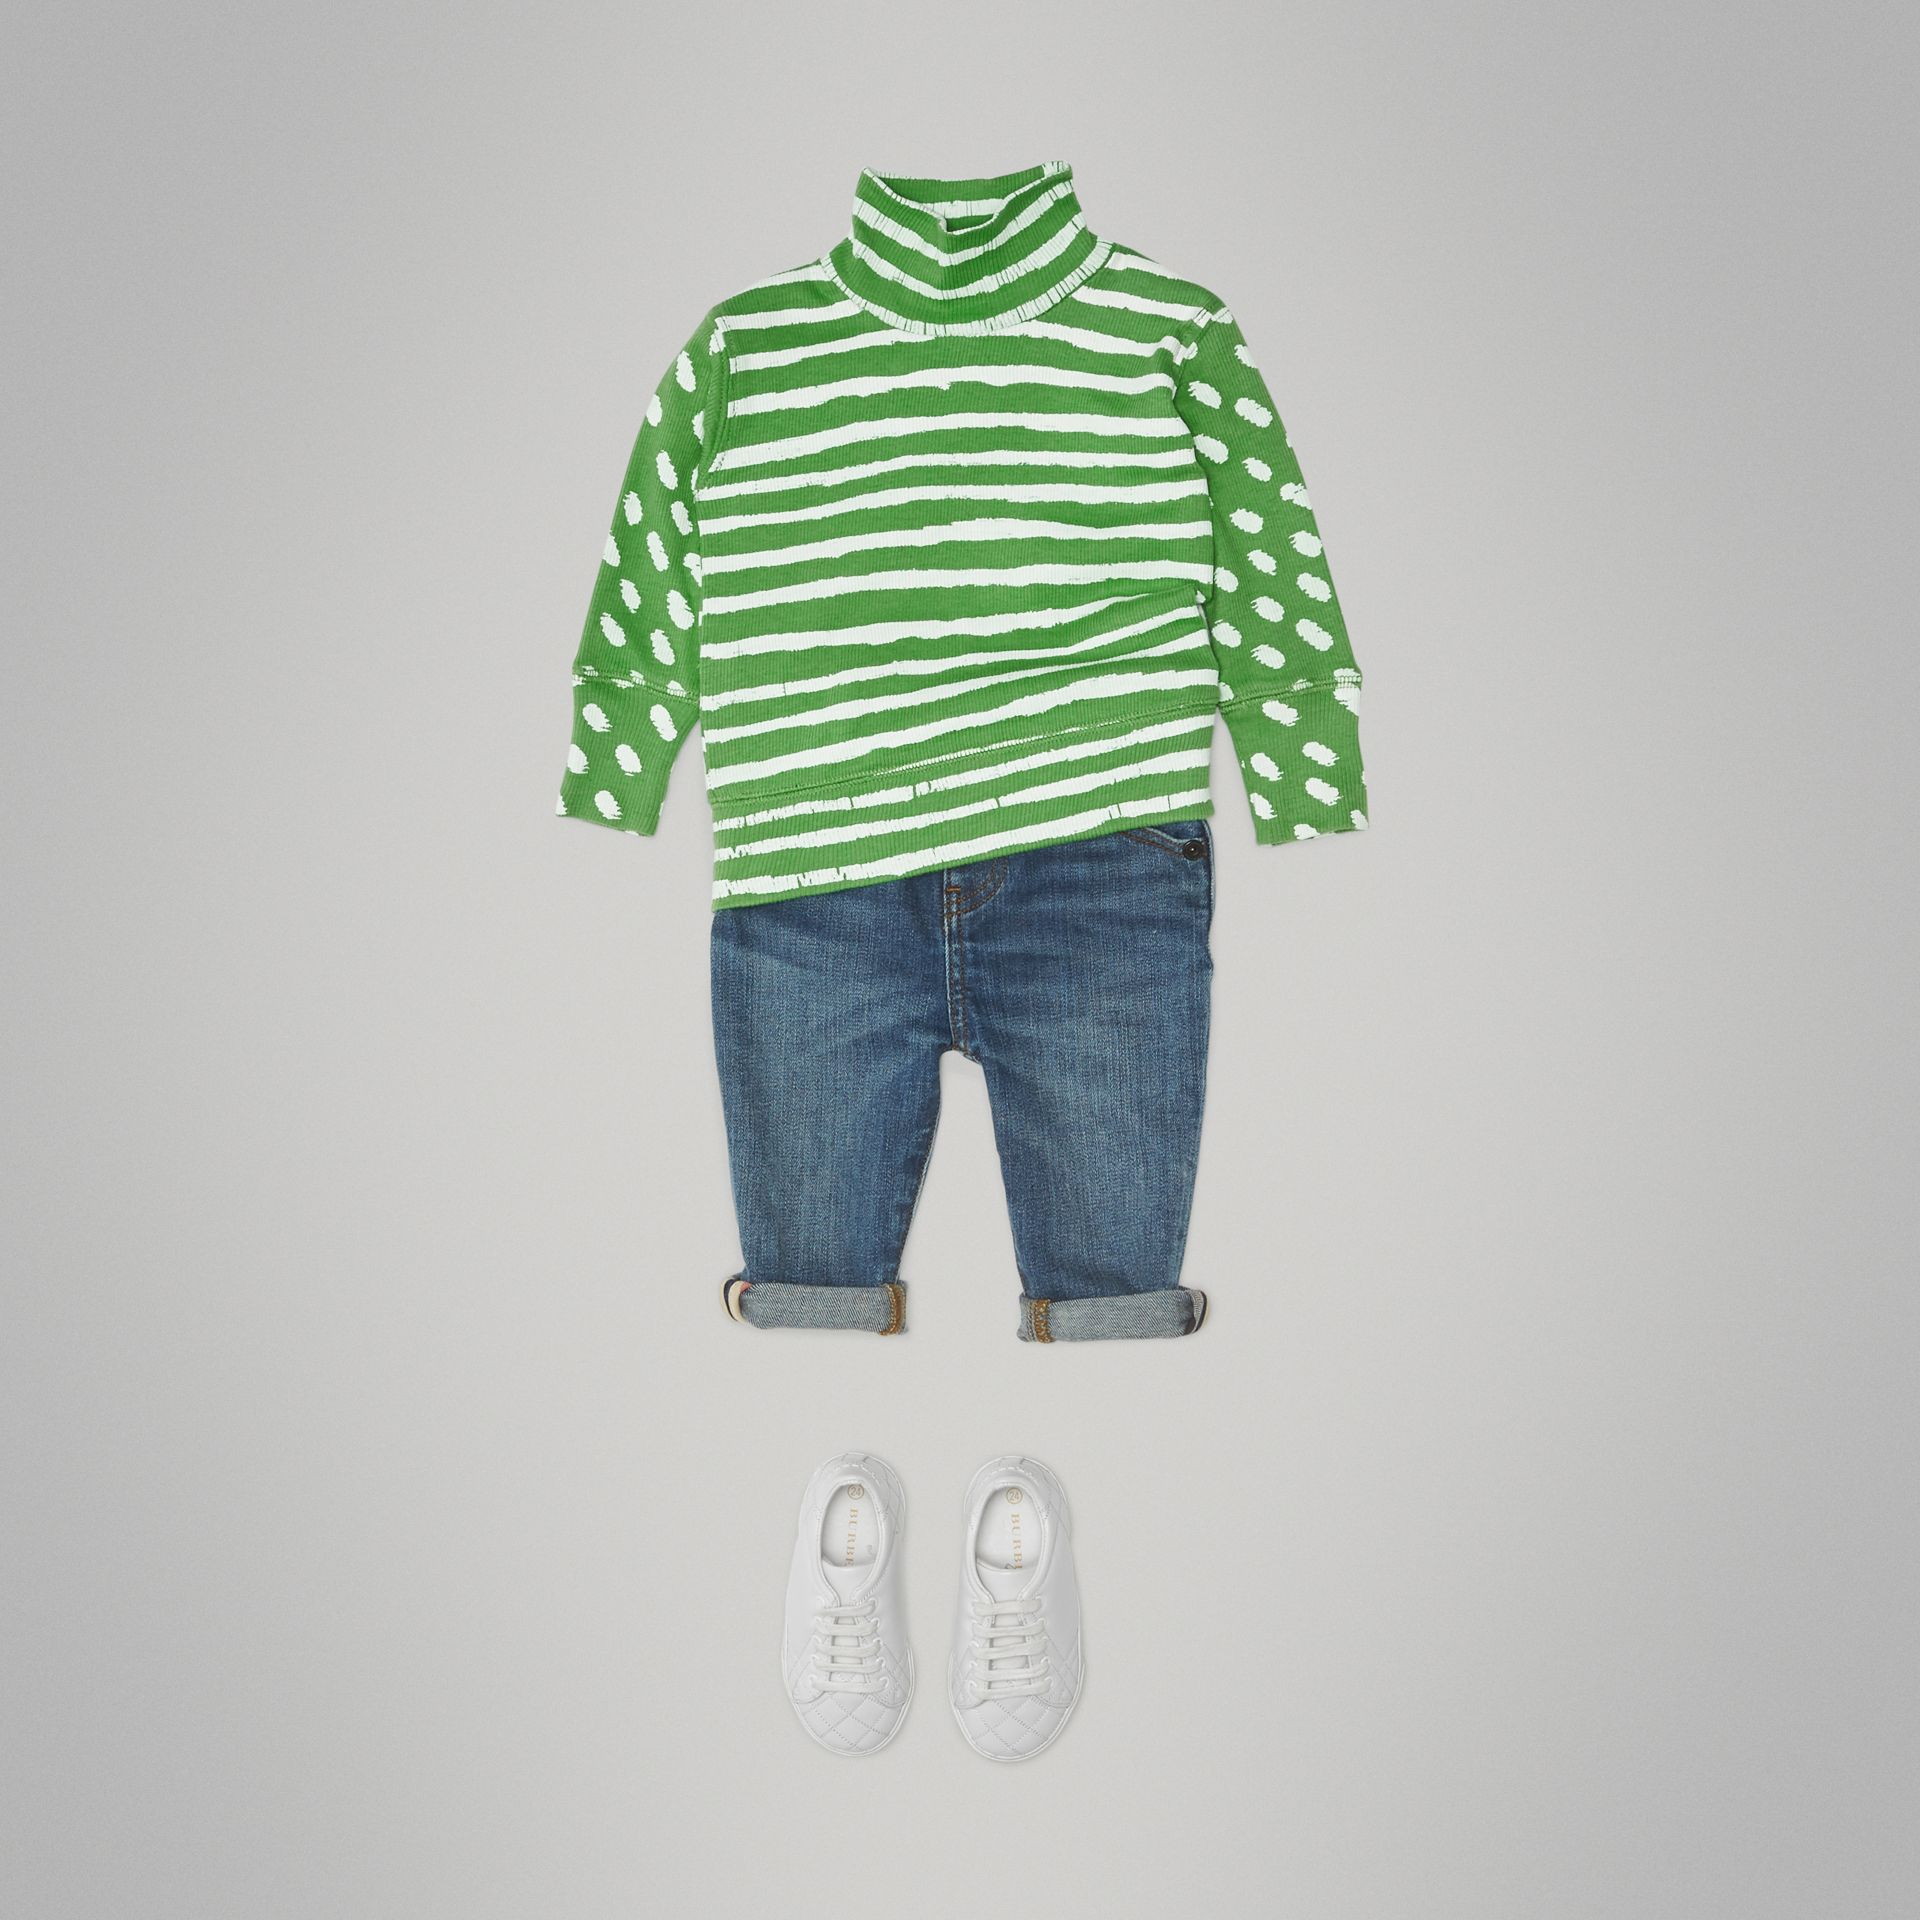 Roll-neck Spot and Stripe Print Cotton Top in Bright Green - Children | Burberry United Kingdom - gallery image 2